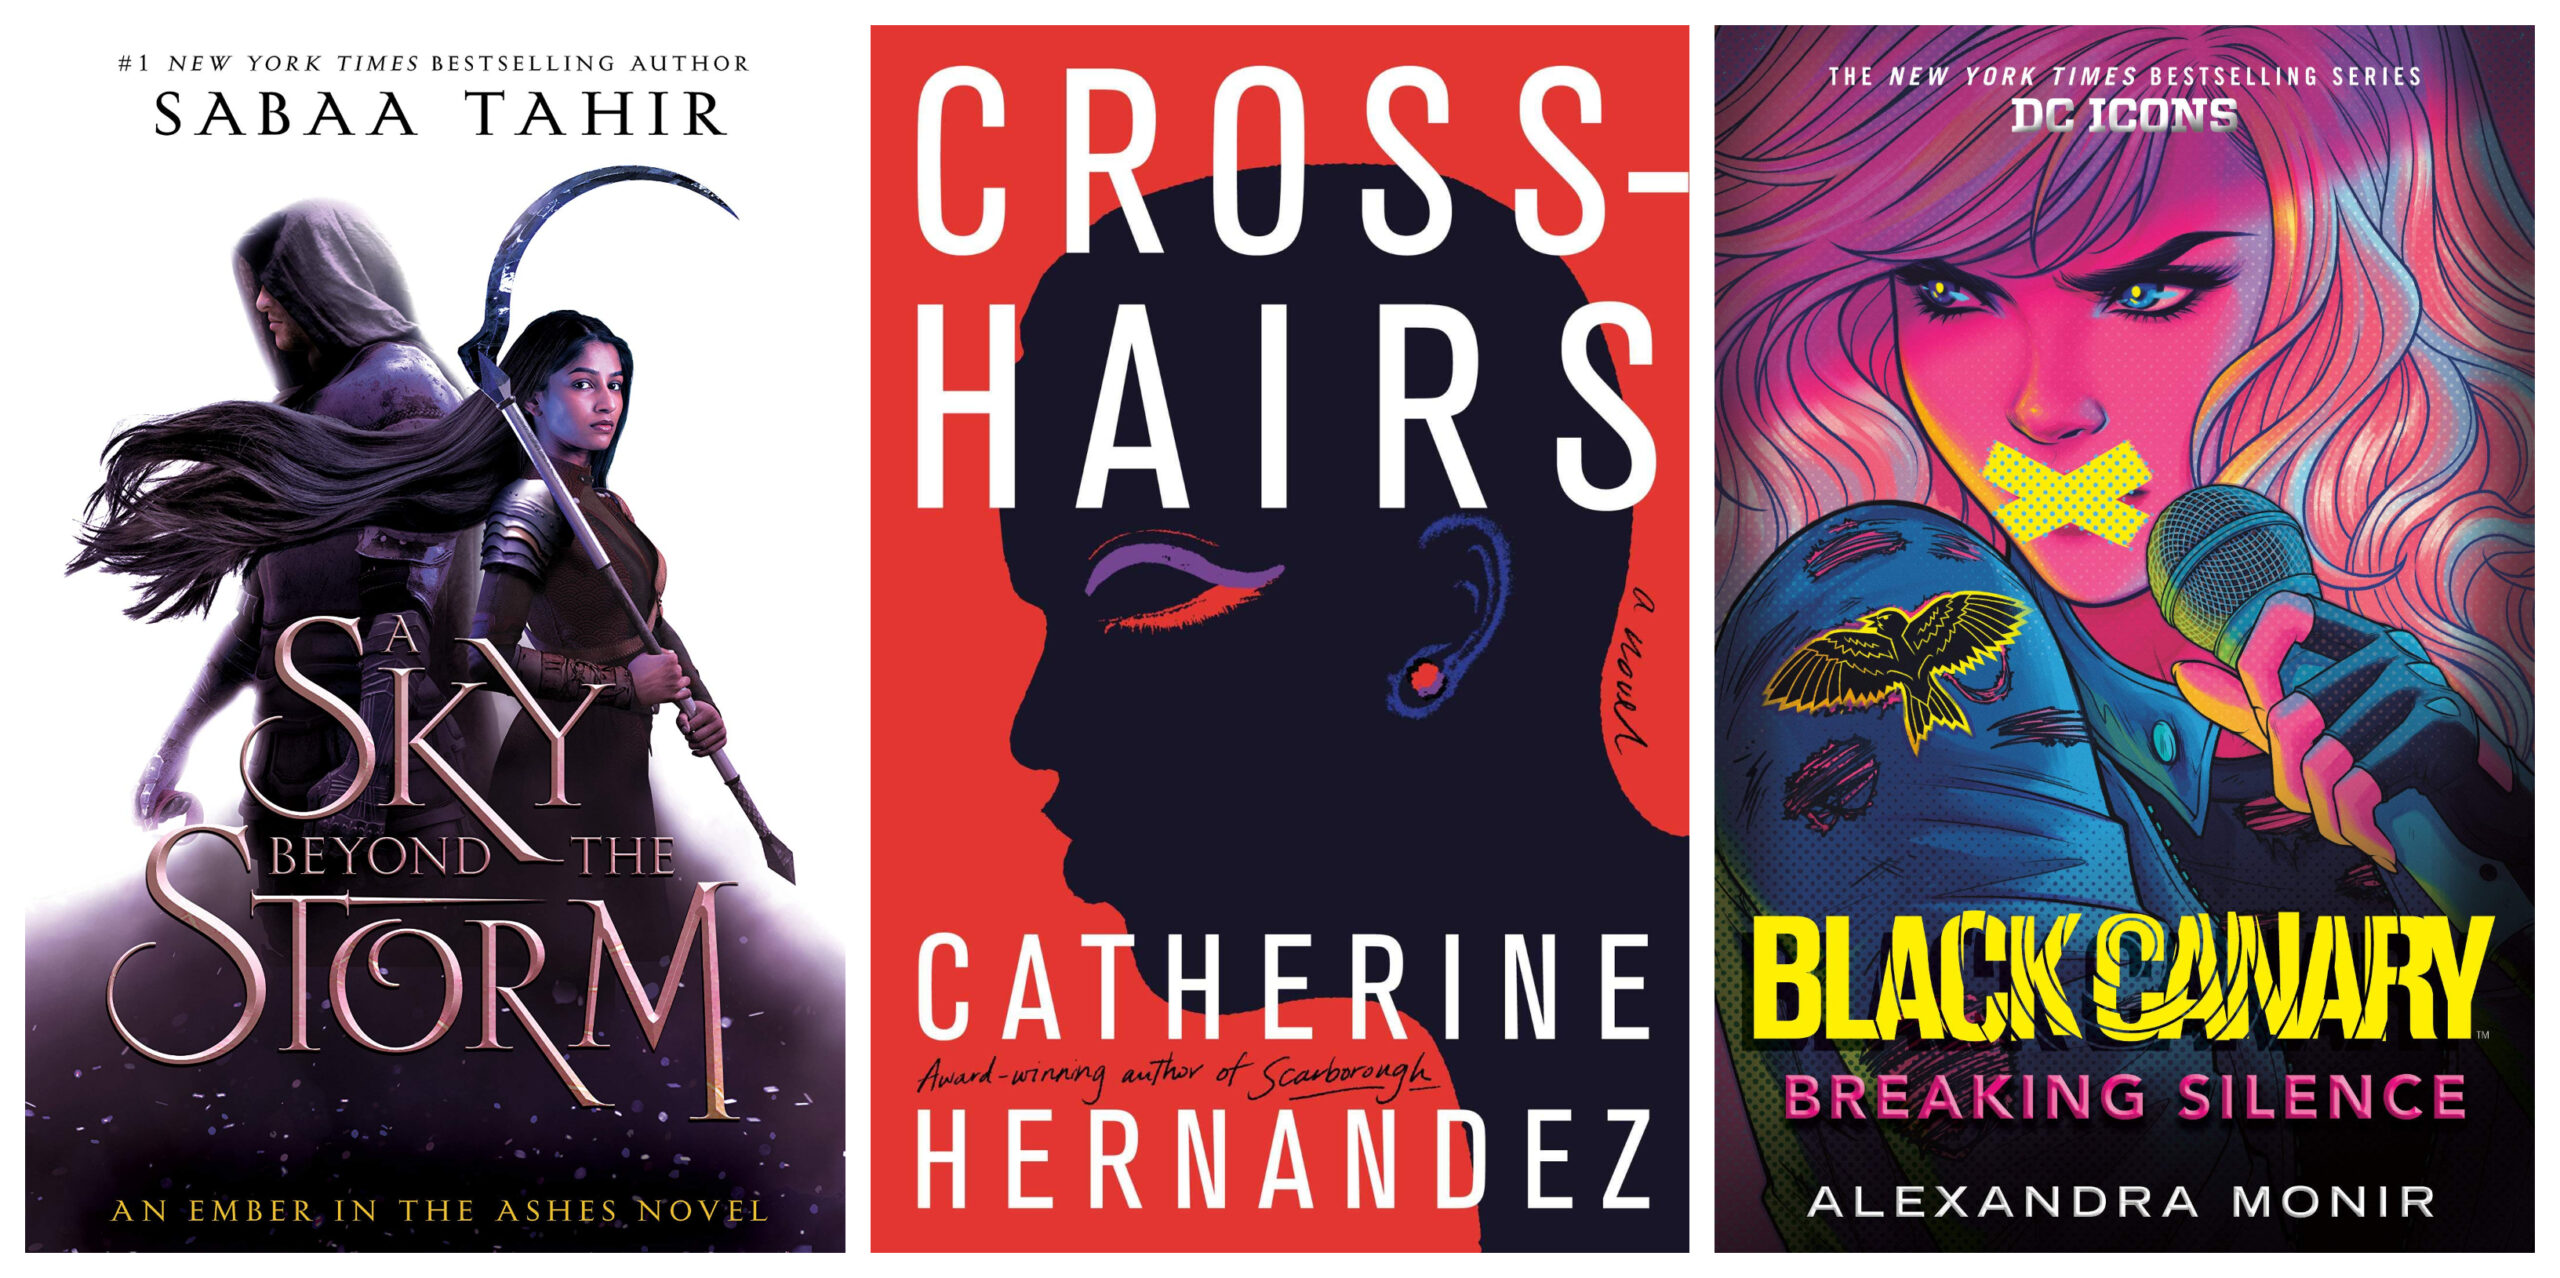 Book covers of A Sky Above The Storm, Crosshairs, and Black Canary: Breaking Silence